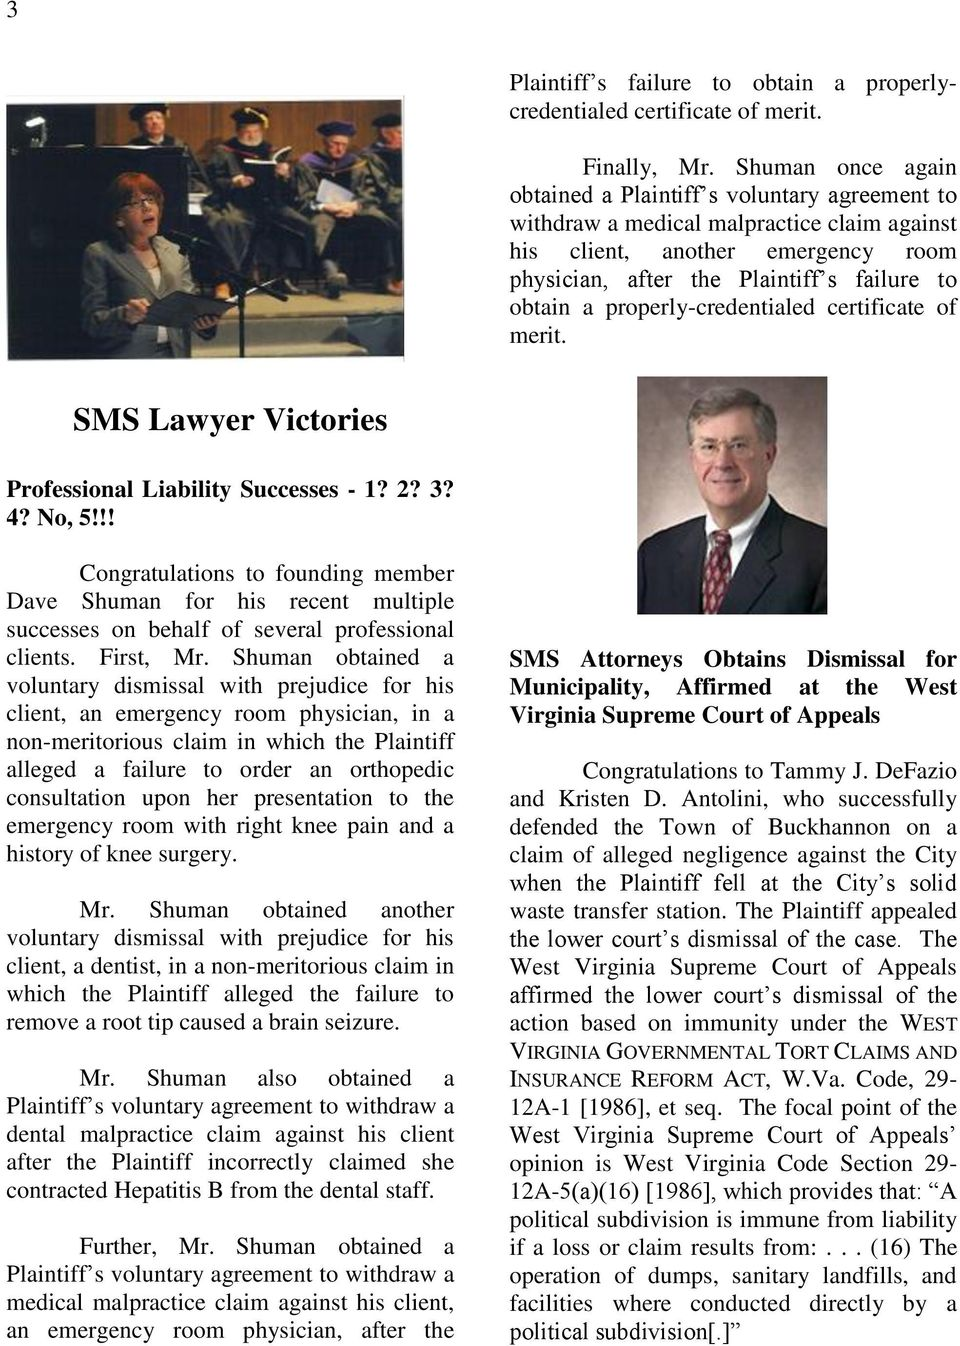 properly-credentialed certificate of merit. SMS Lawyer Victories Professional Liability Successes - 1? 2? 3? 4? No, 5!